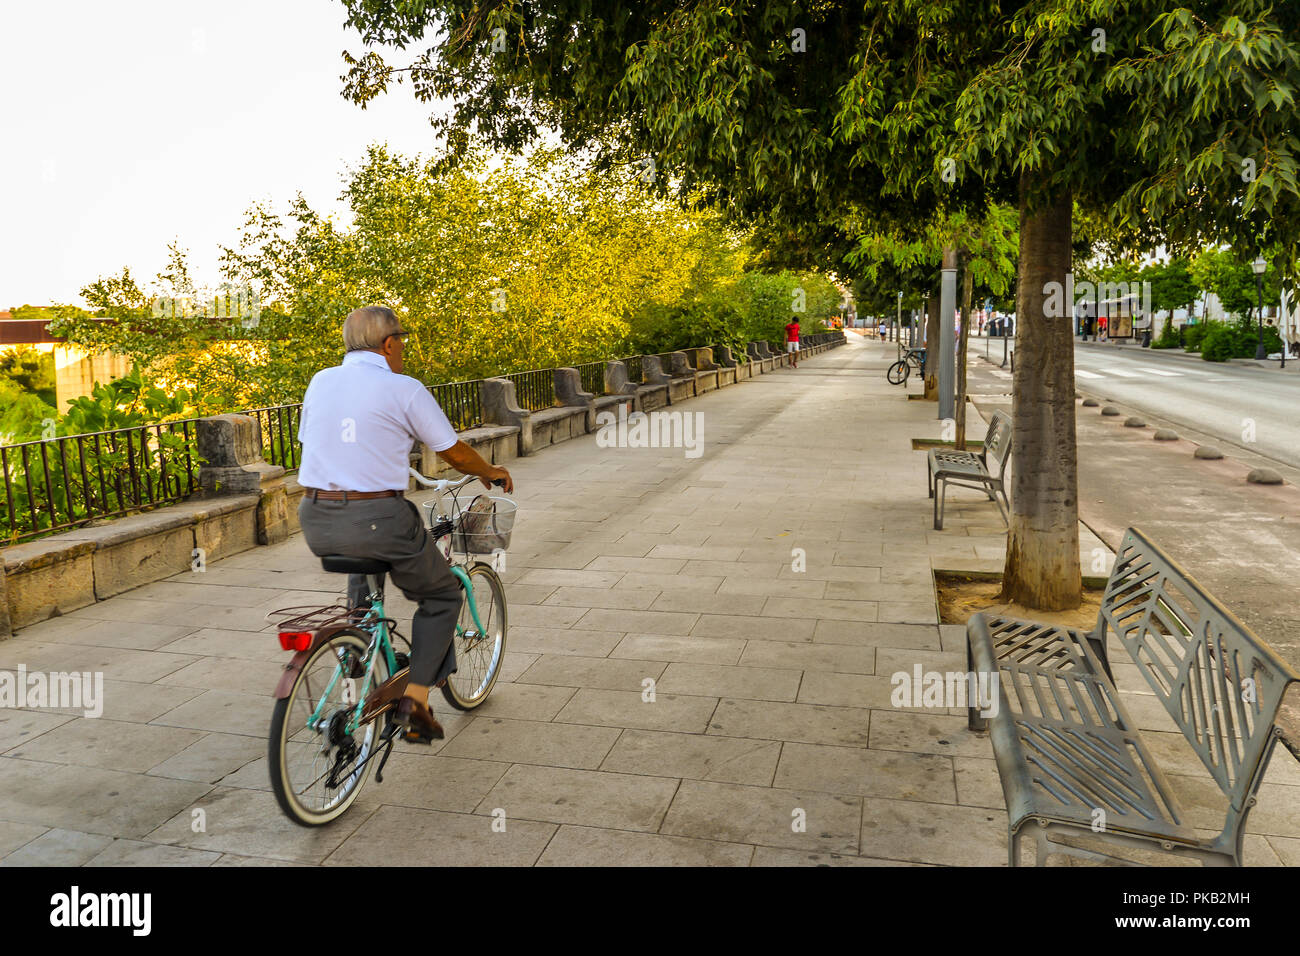 Cordoba/ Spain - 08/20/18 - A man biking along the river in the old town area of Cordoba - Spain - Stock Image